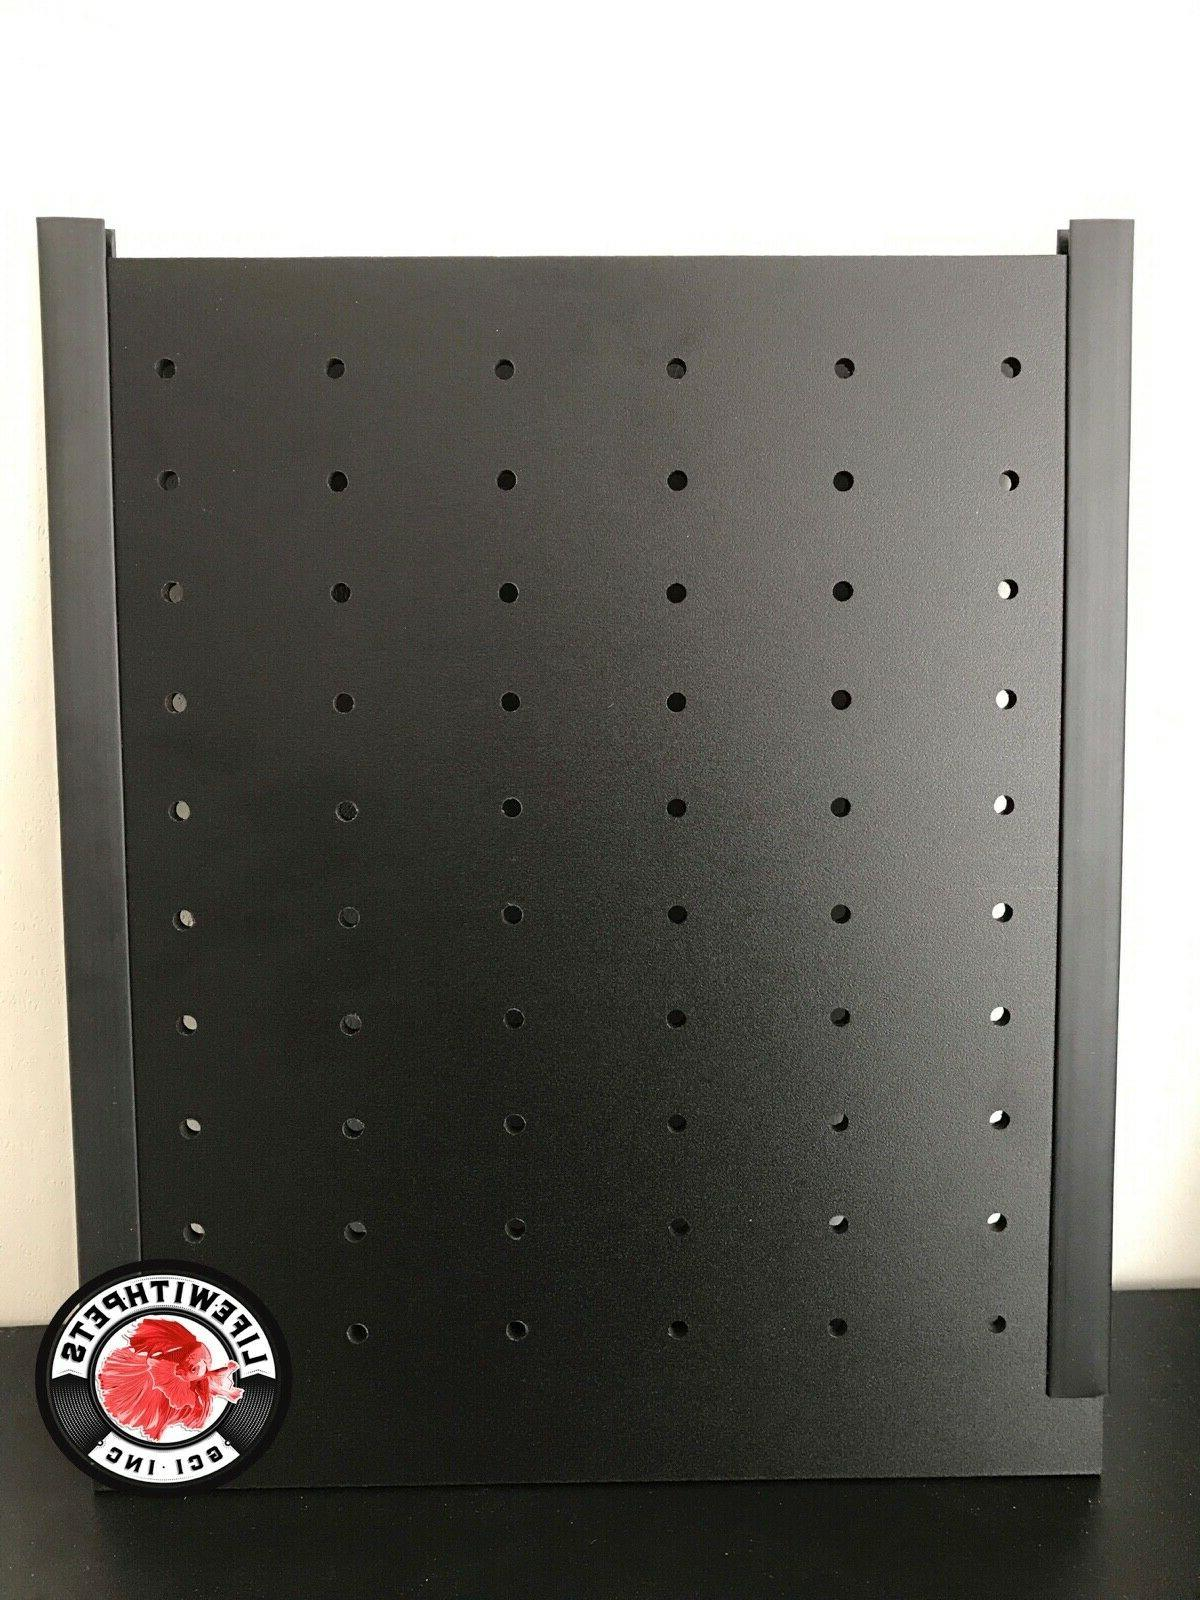 10 gallon tank divider solid and sturdy